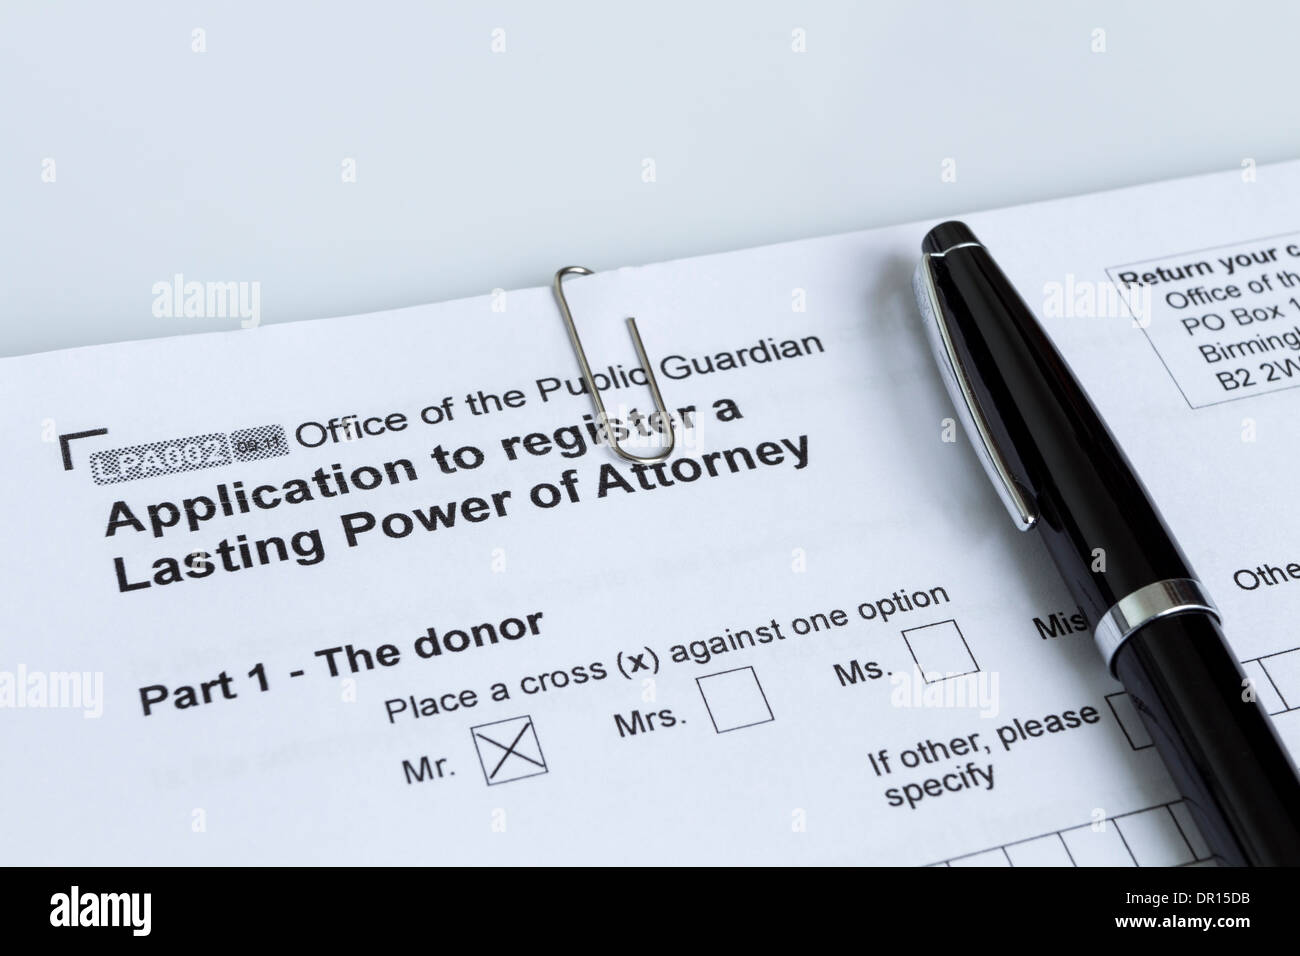 Application to Register a Lasting Power of Attorney From the Office of the Public Guardian with Pen UK - Stock Image